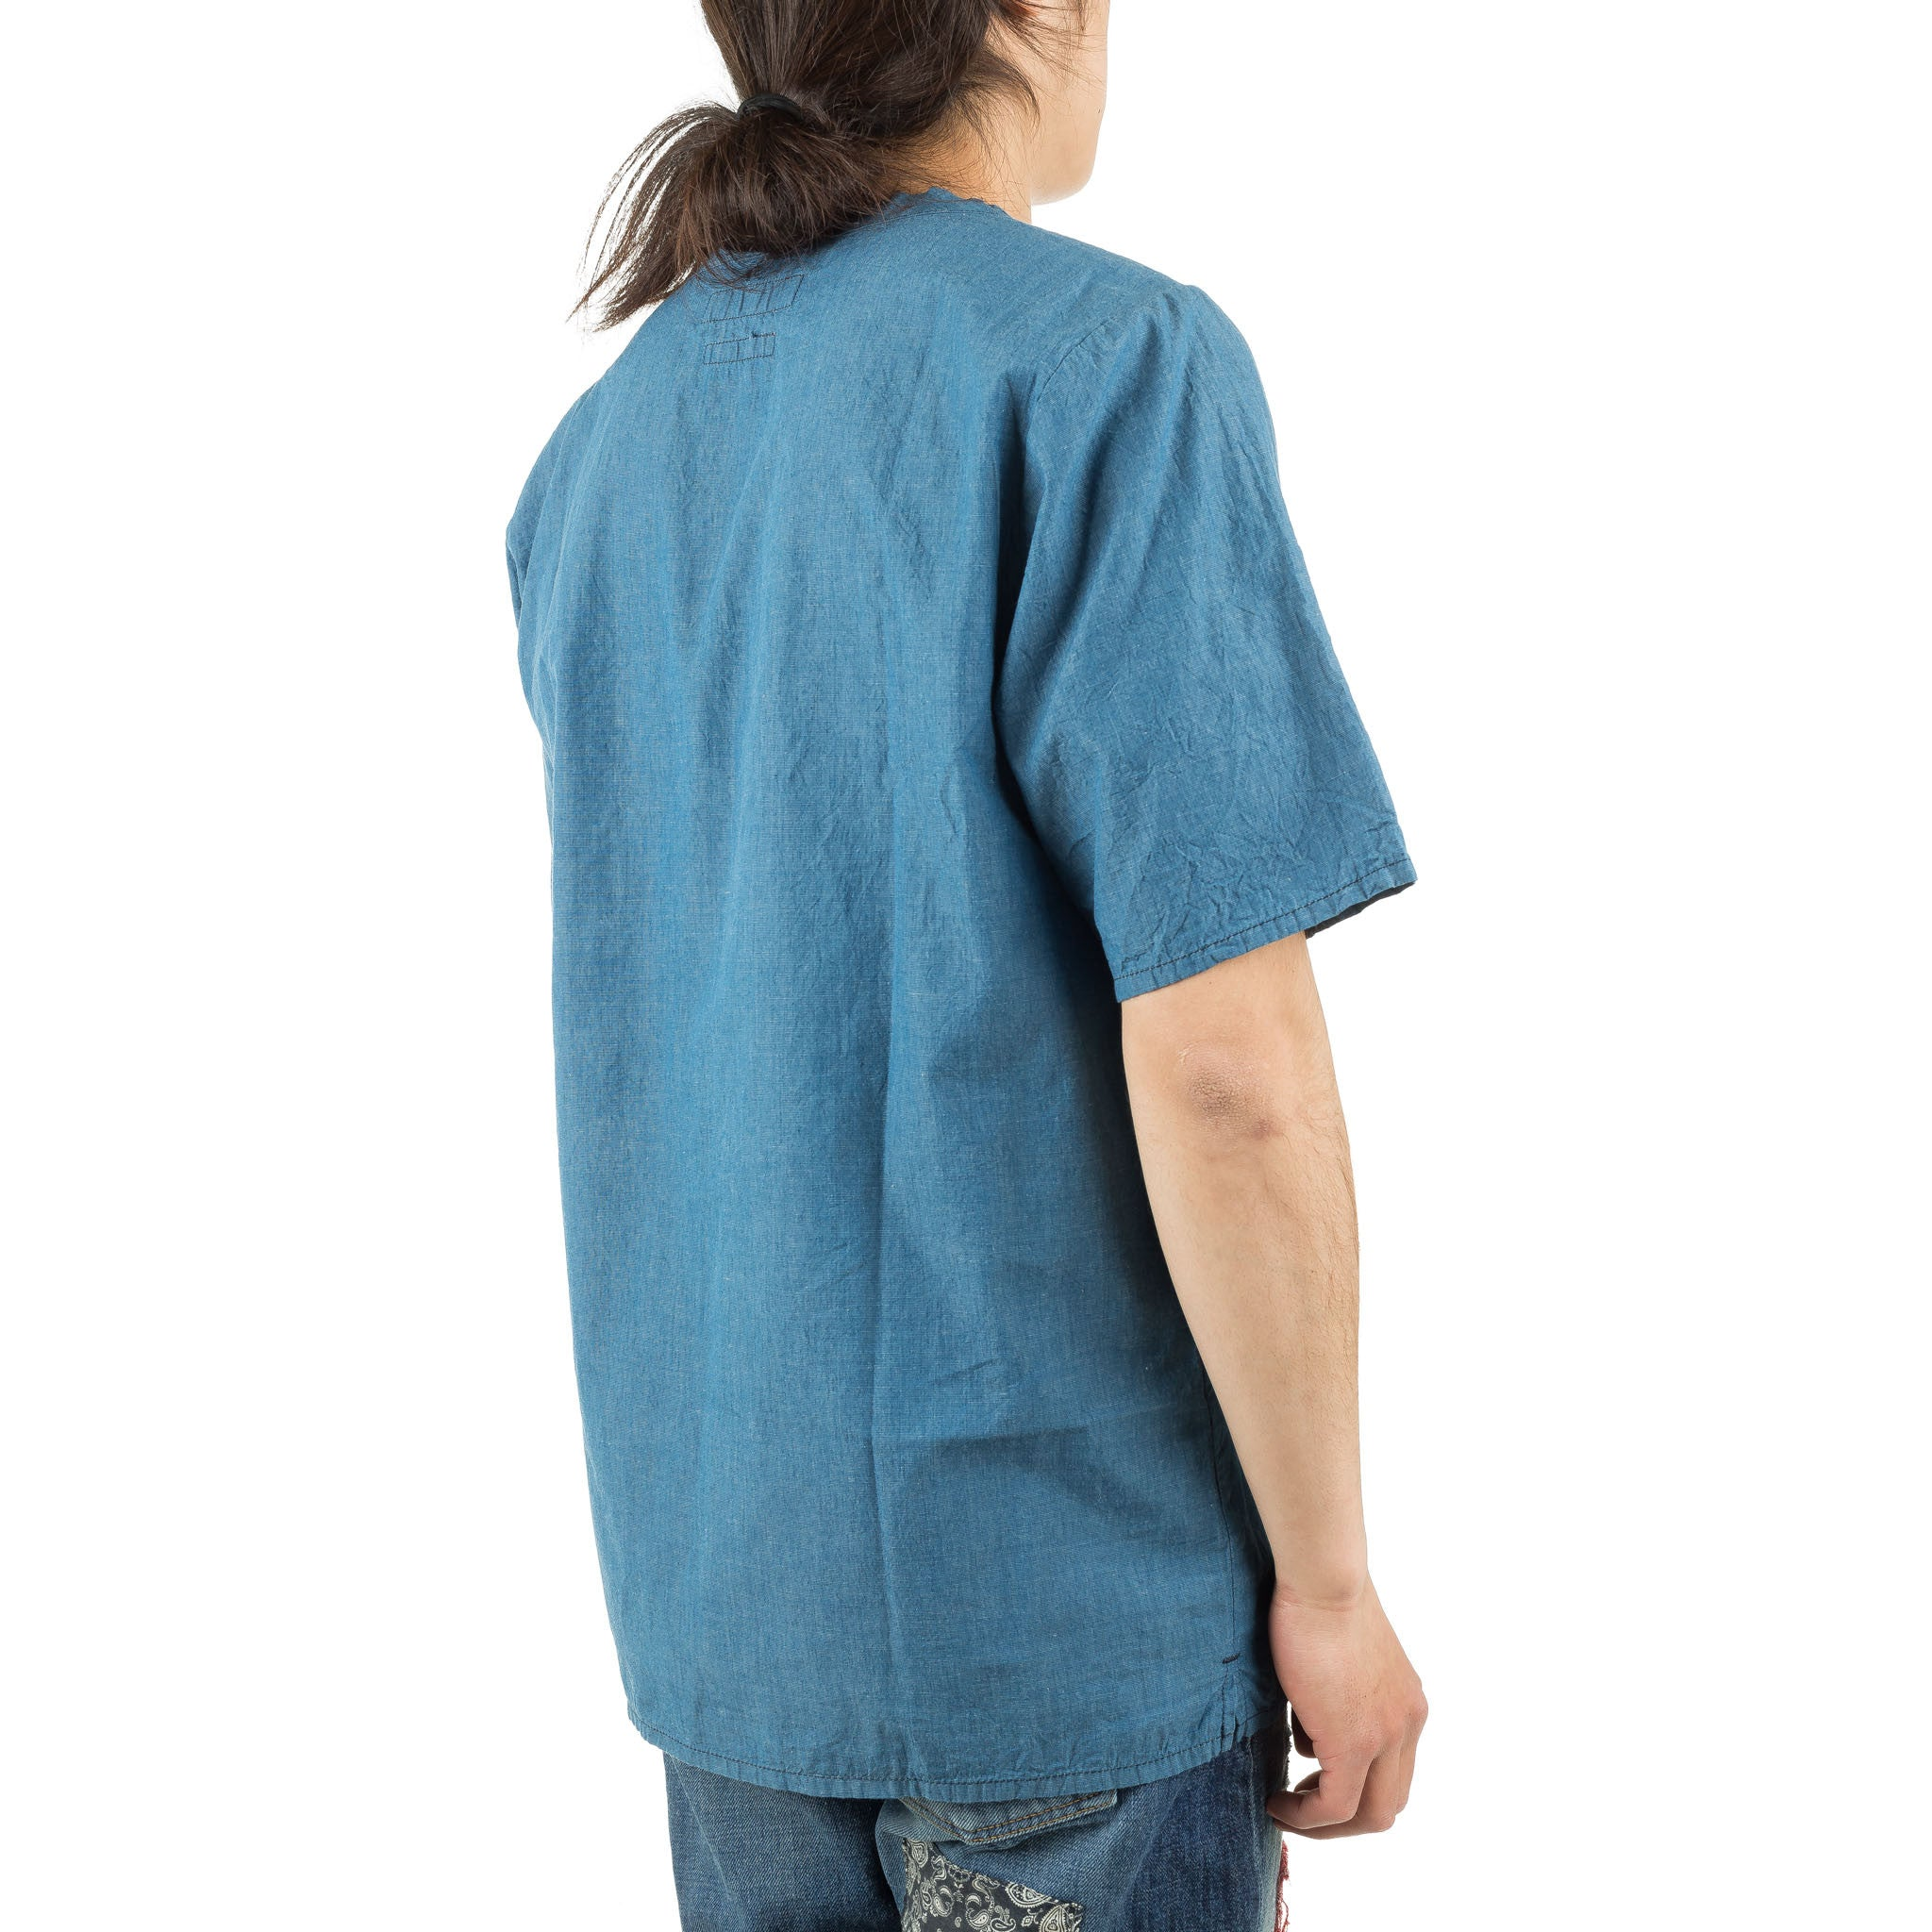 Indigo Pocket Pull Shirt ST11 Blue